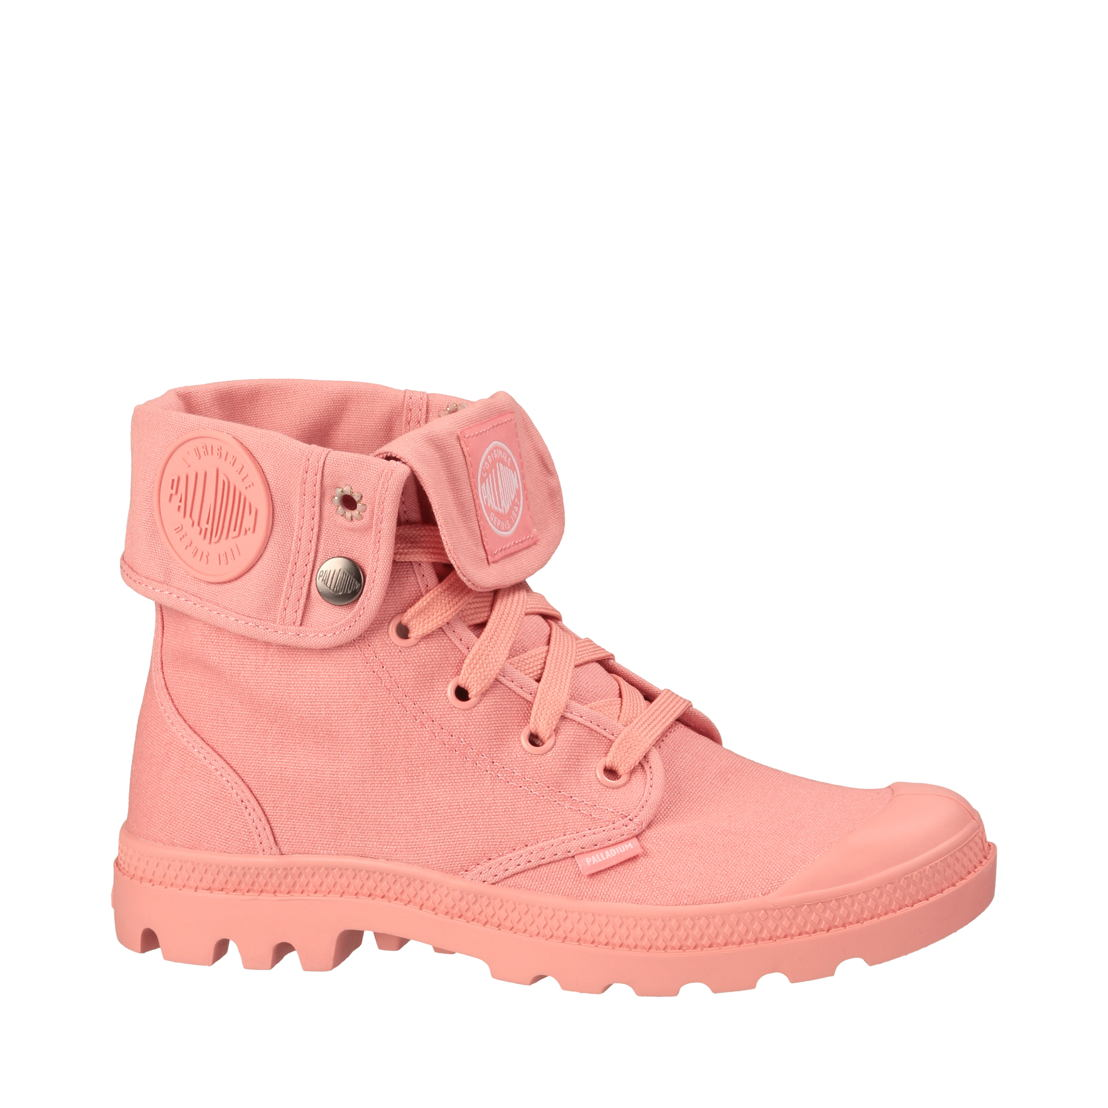 Palladium_Women Baggy M - 69,95 euro